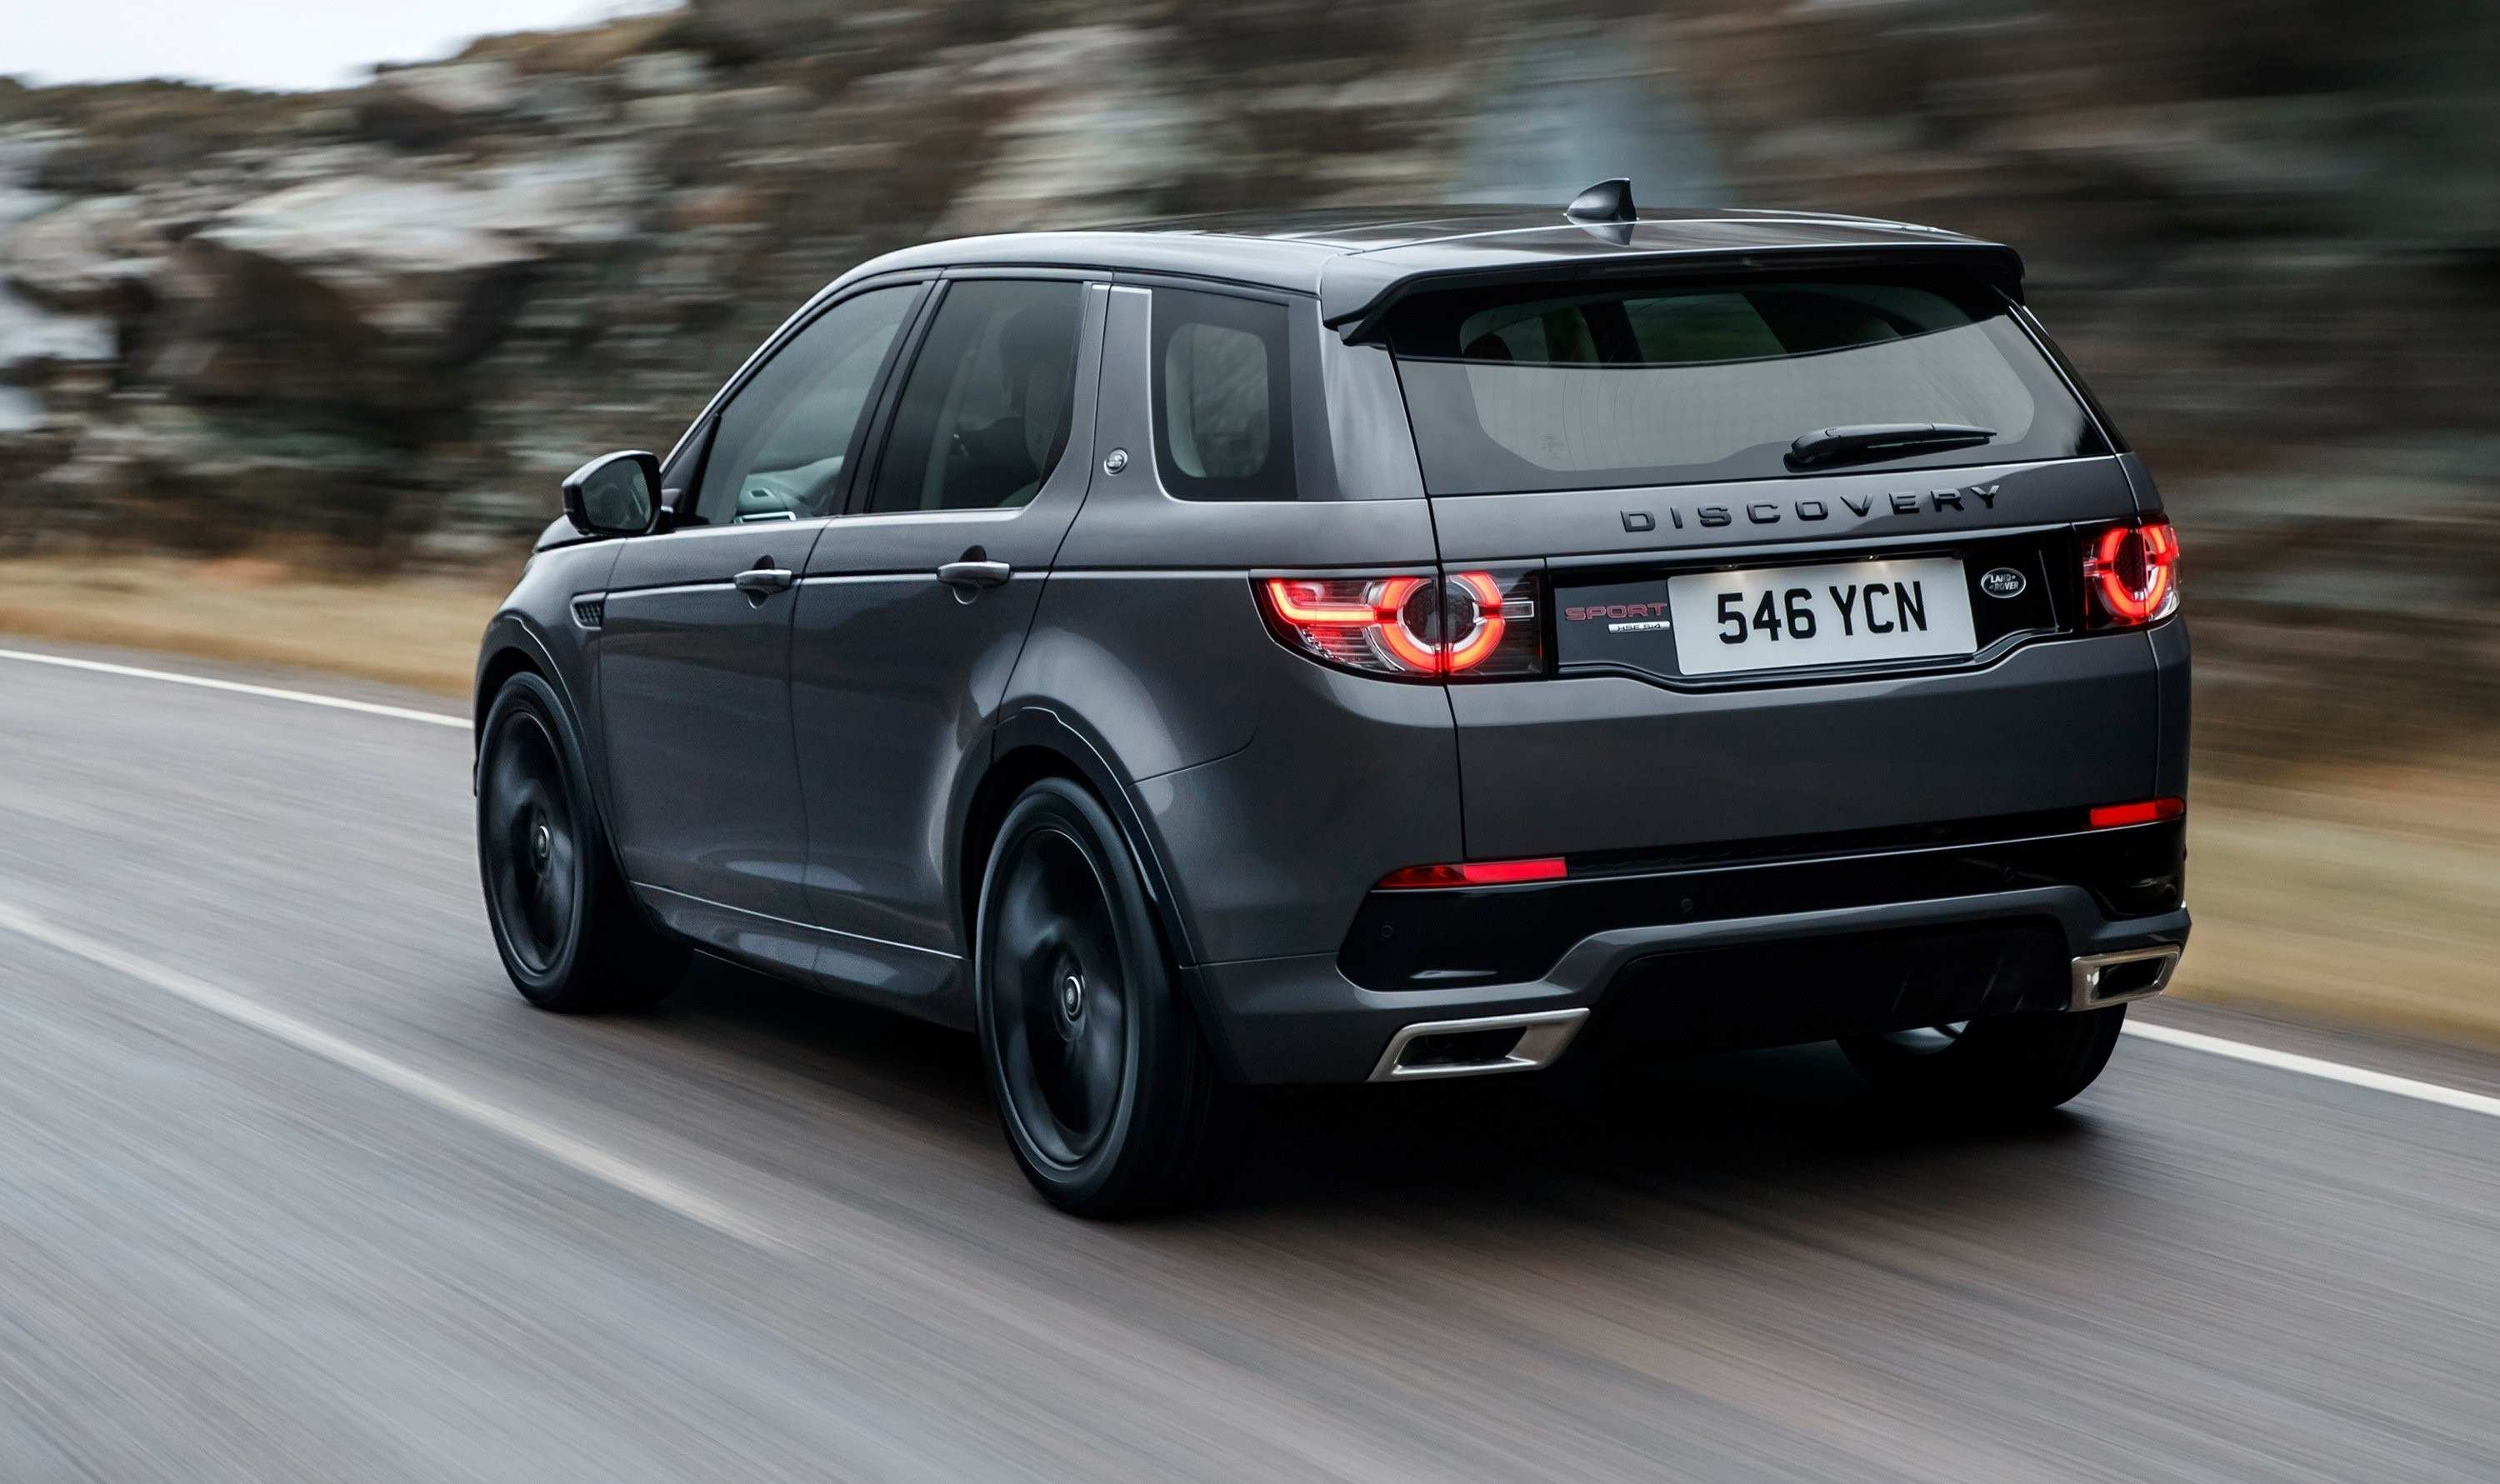 77 A 2020 Land Rover Discovery Pictures